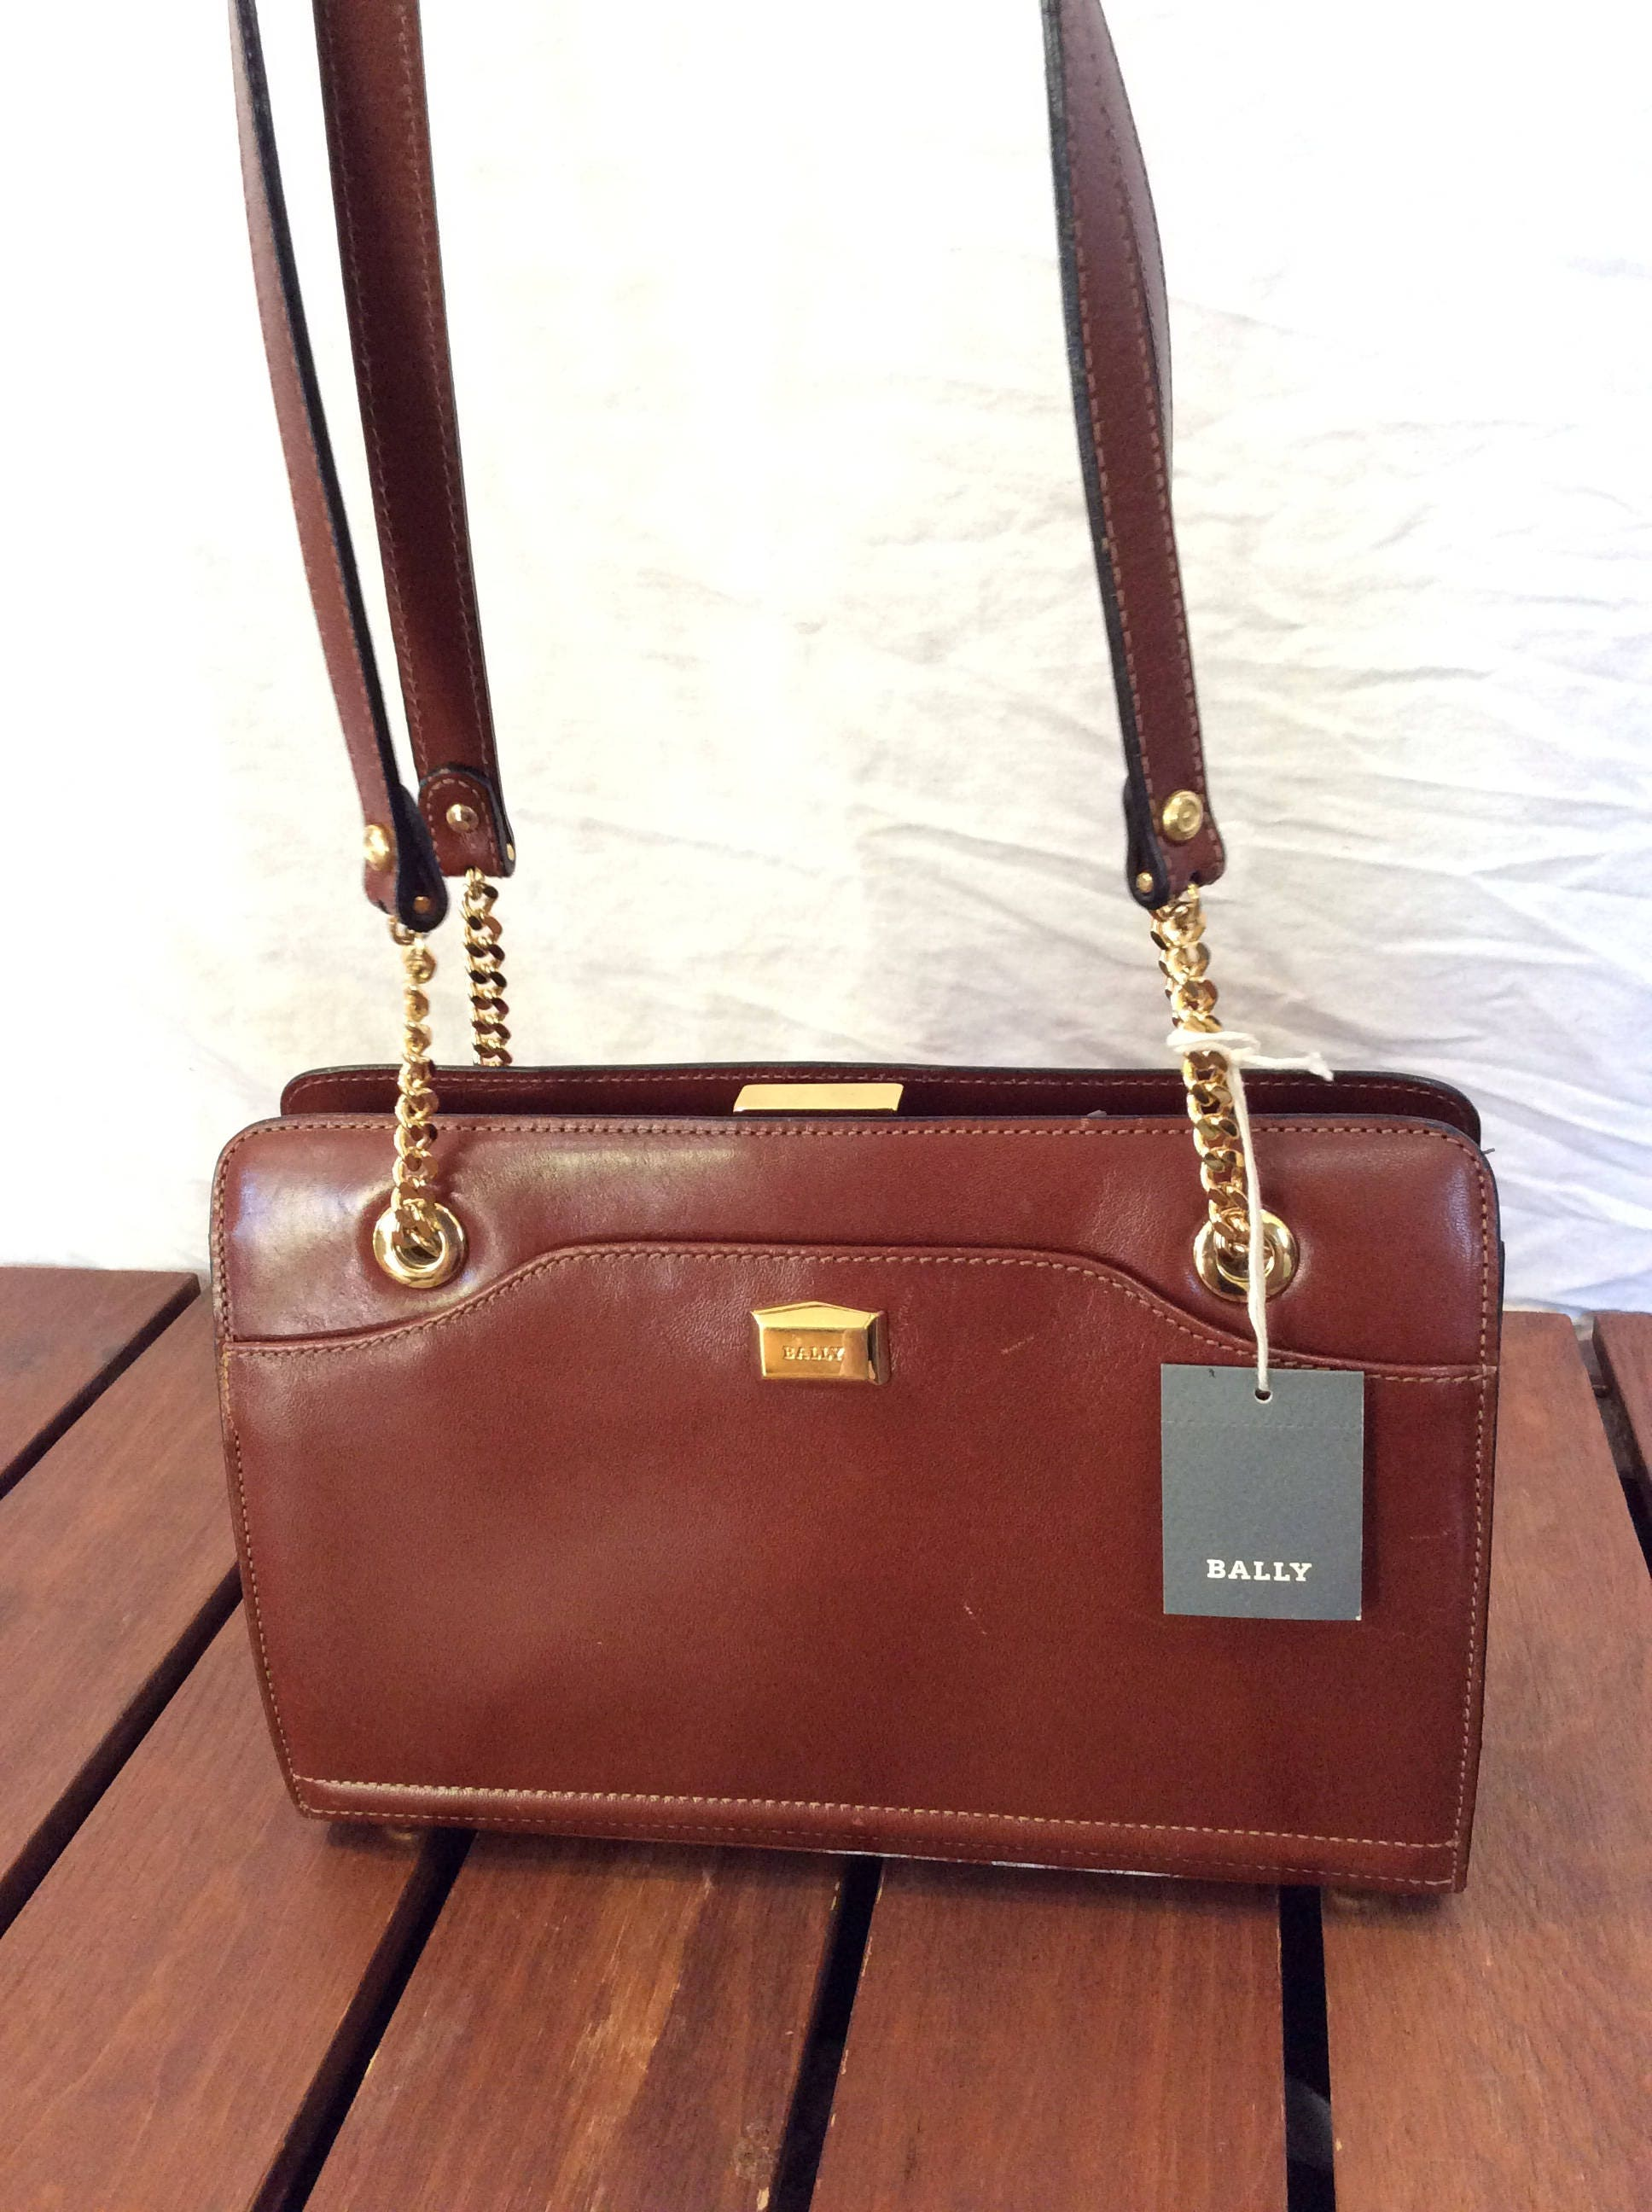 BALLY Vintage Genuine Brown Leather Shoulder Bag Made in Italy cc3ab4e525aa3